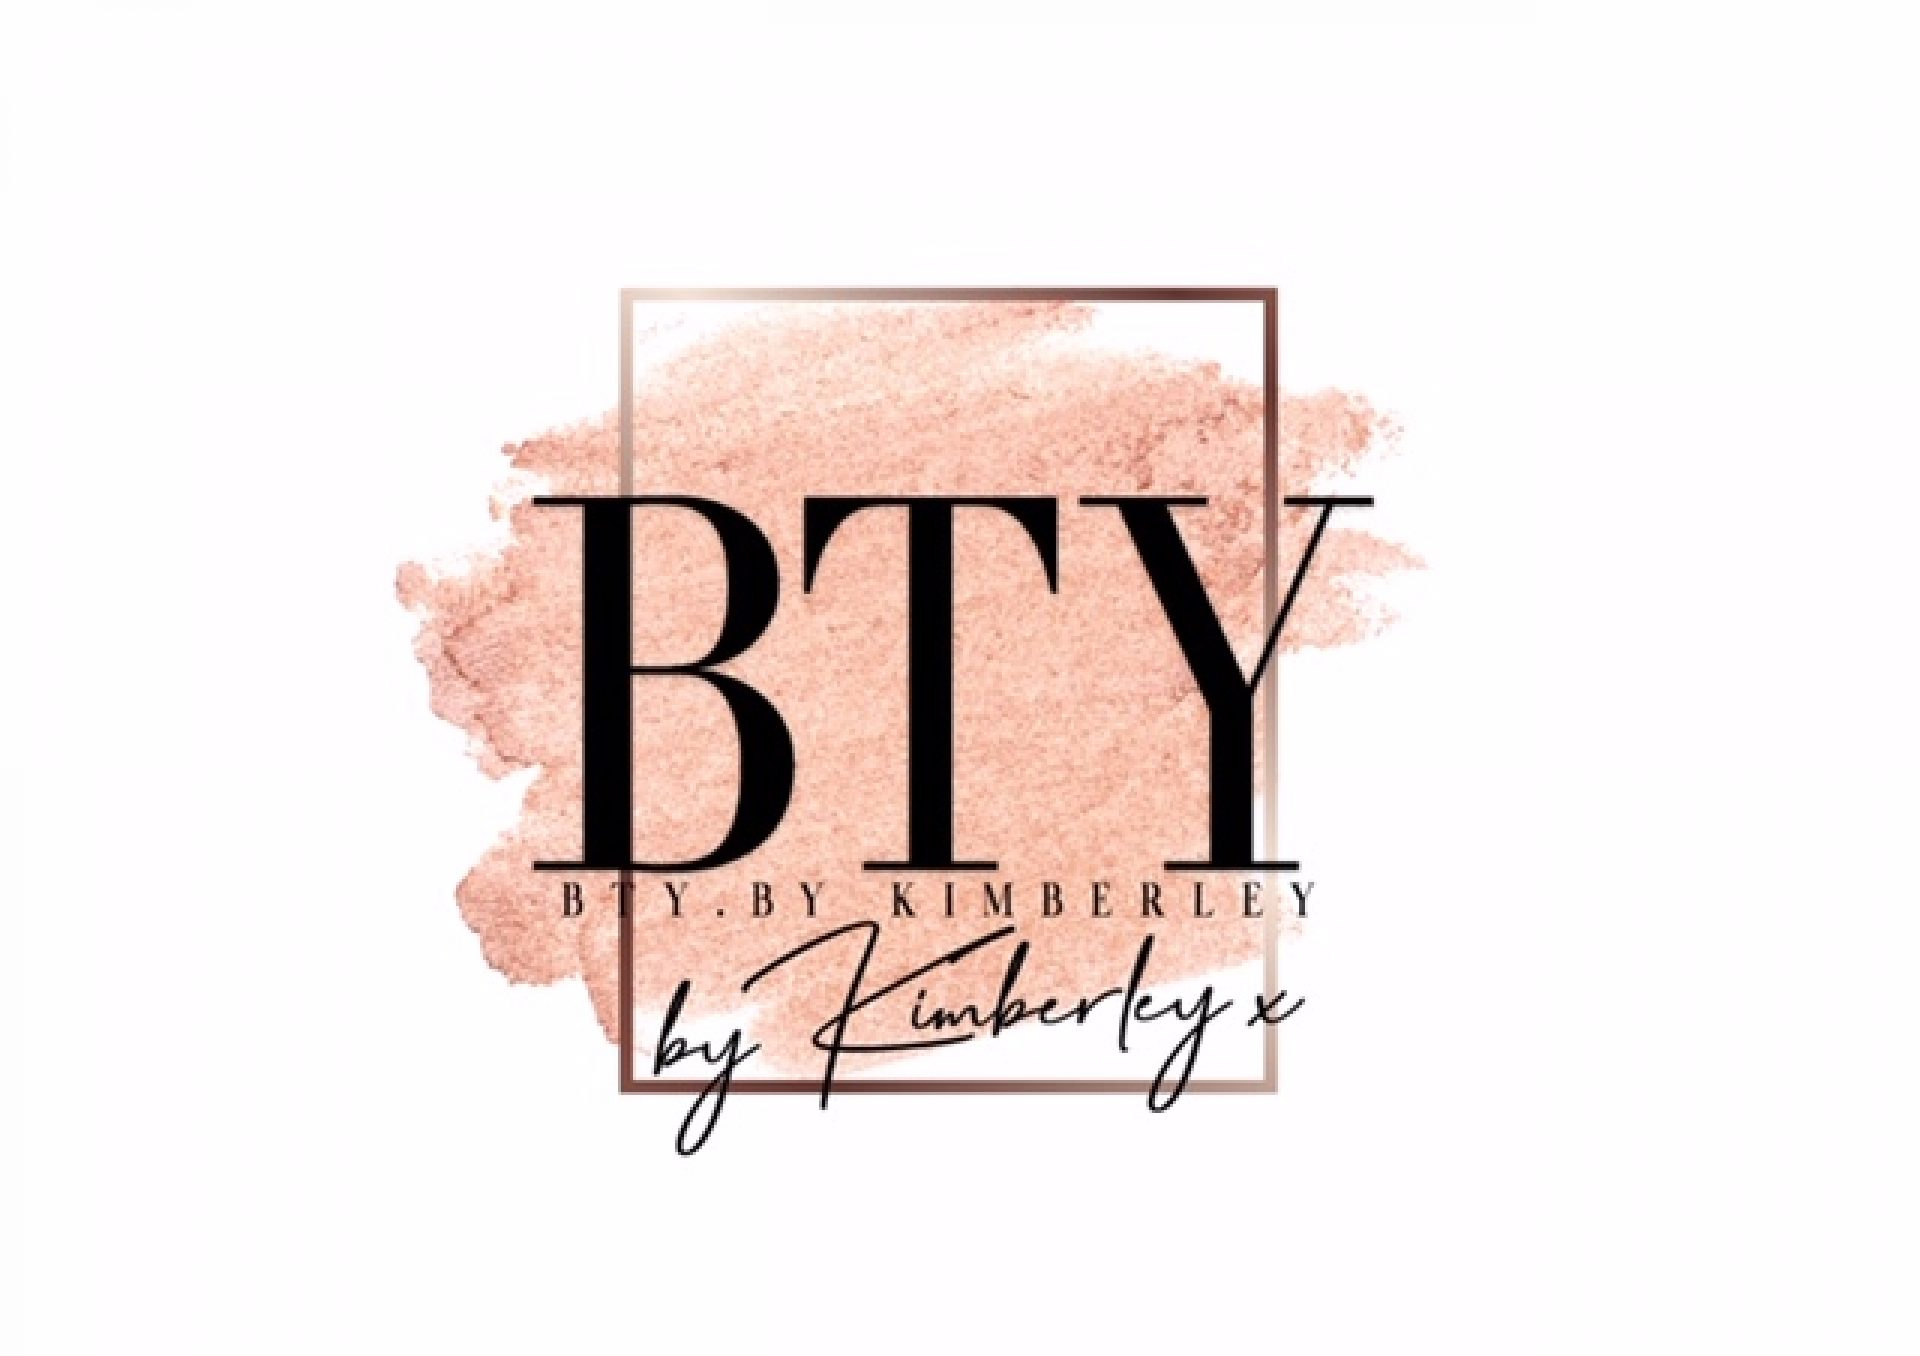 BTY By Kimberley